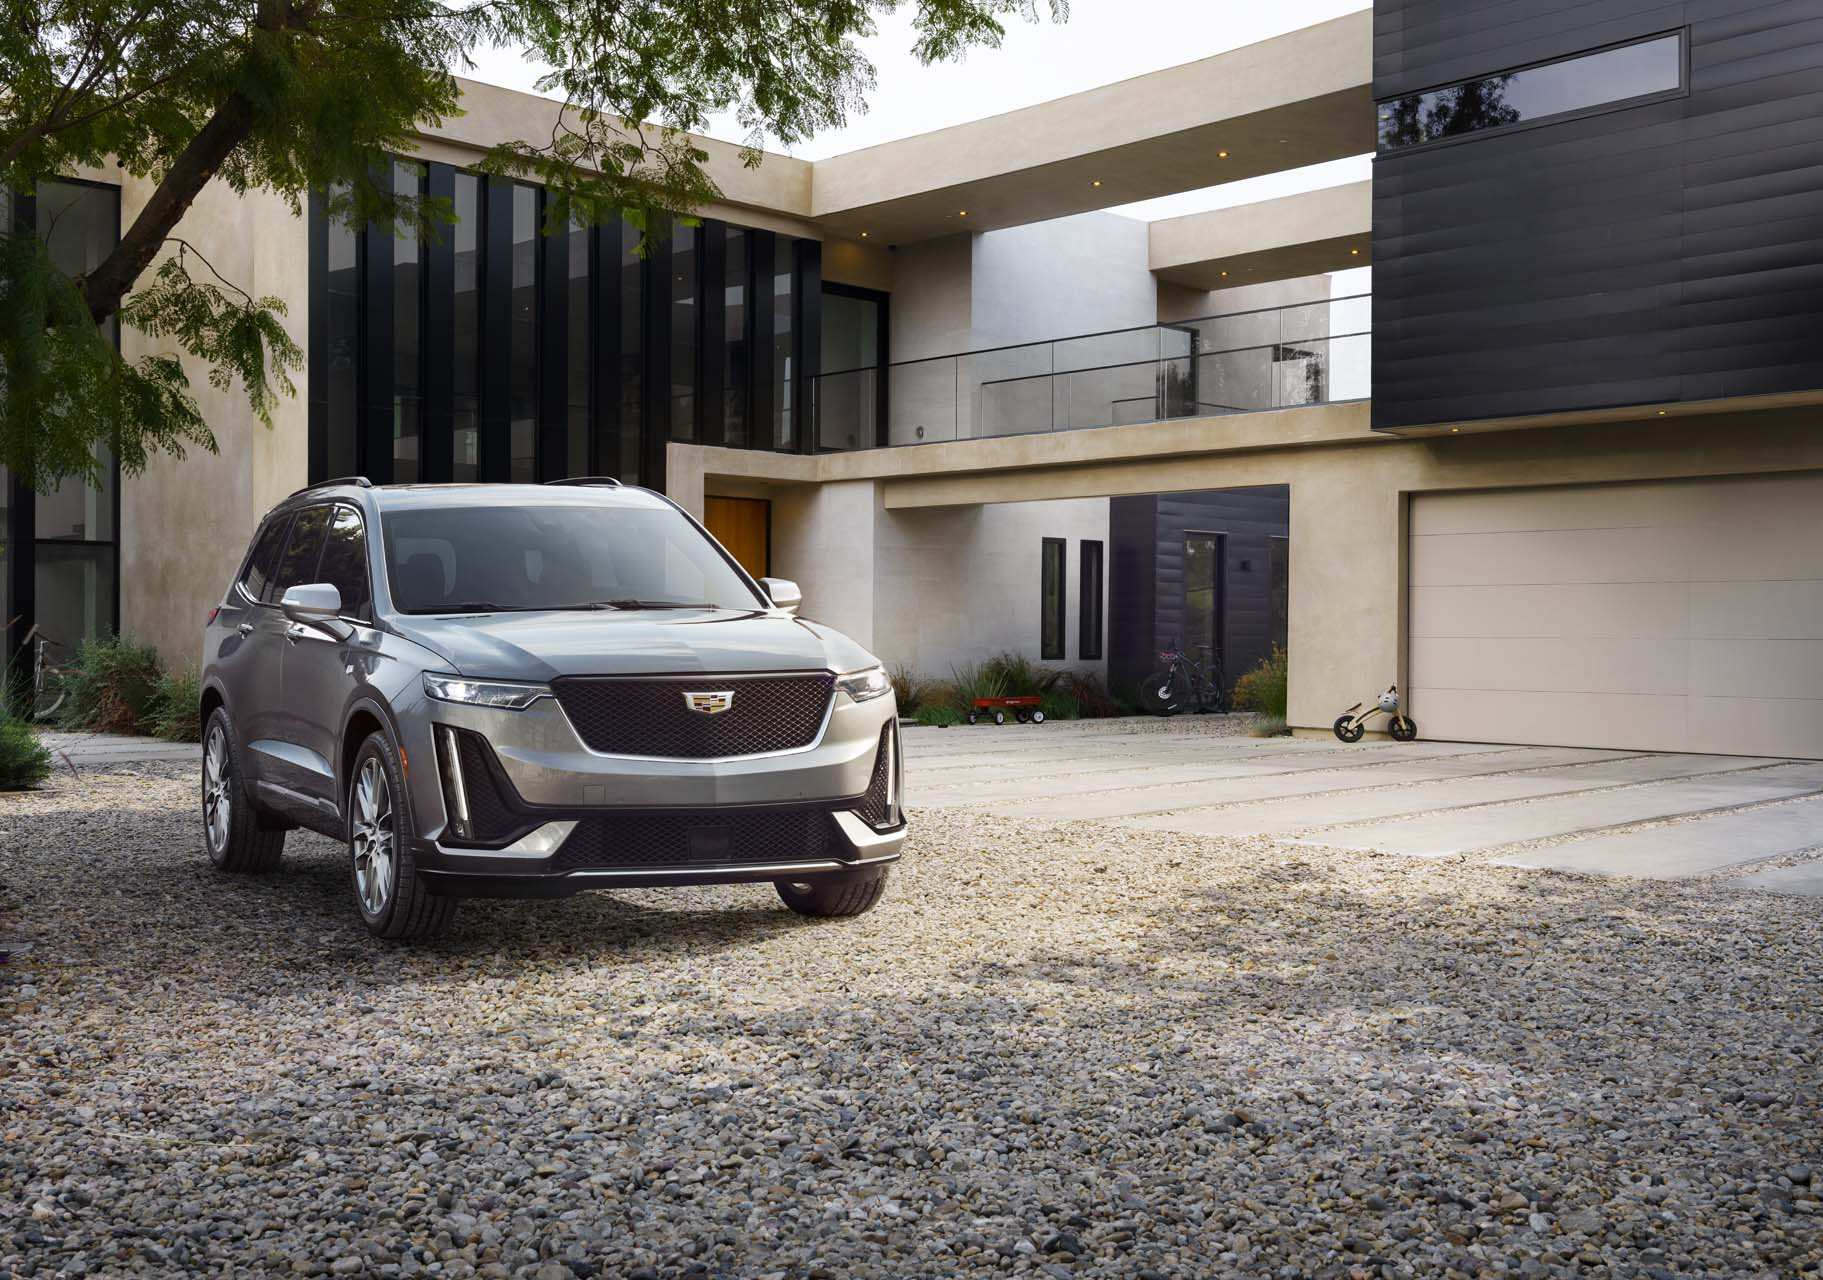 39 Best 2020 Cadillac Xt6 Gas Mileage Redesign